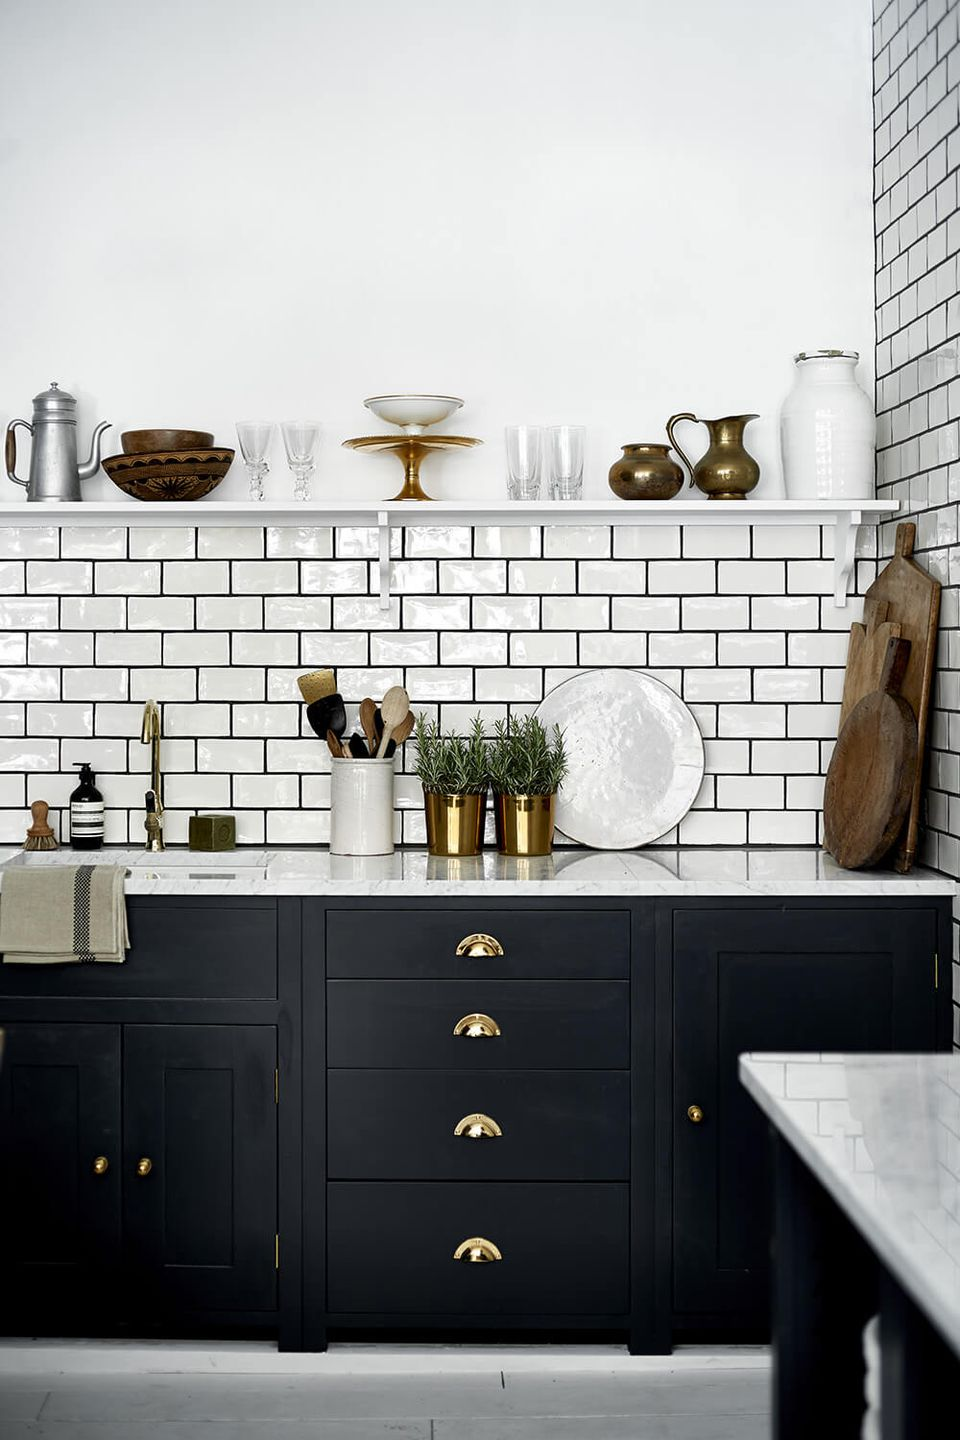 19 Ways to Use Subway Tile in the Kitchen